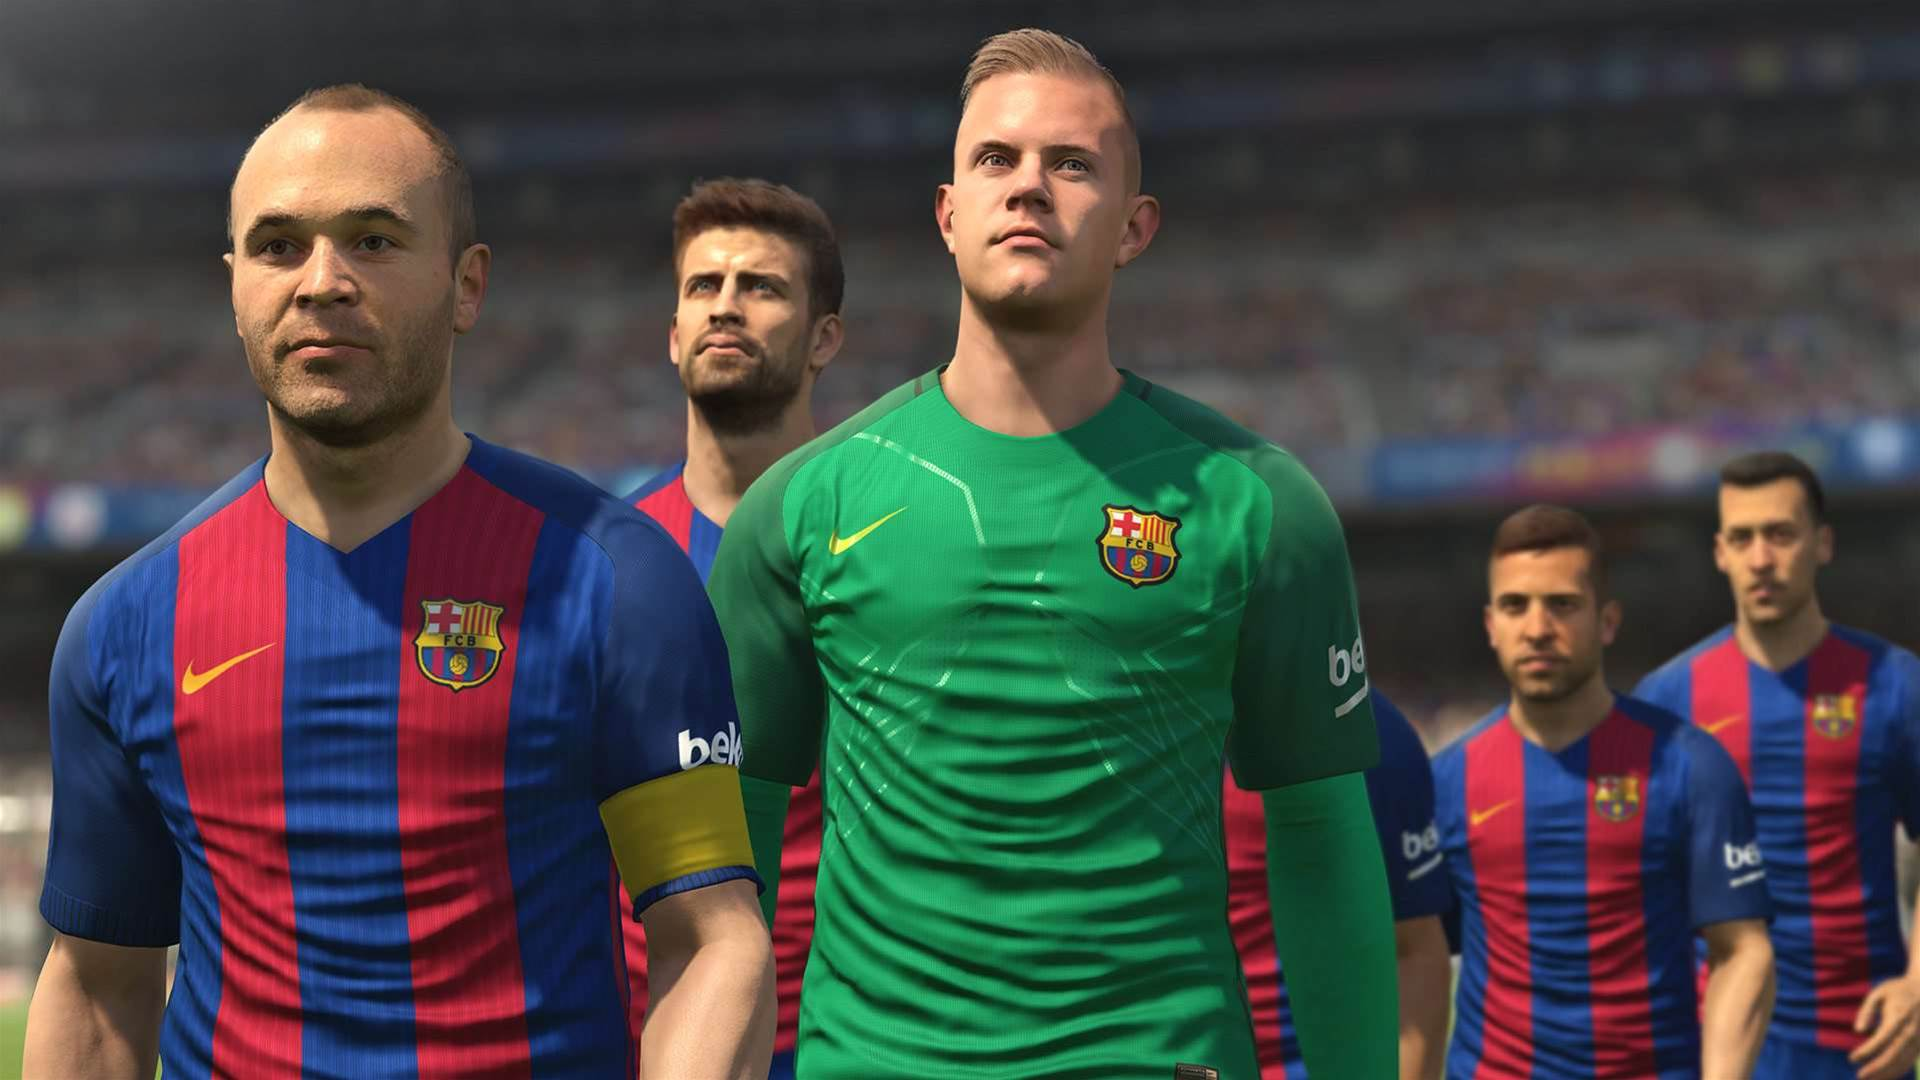 PES 2017 demo live now on the PlayStation Store